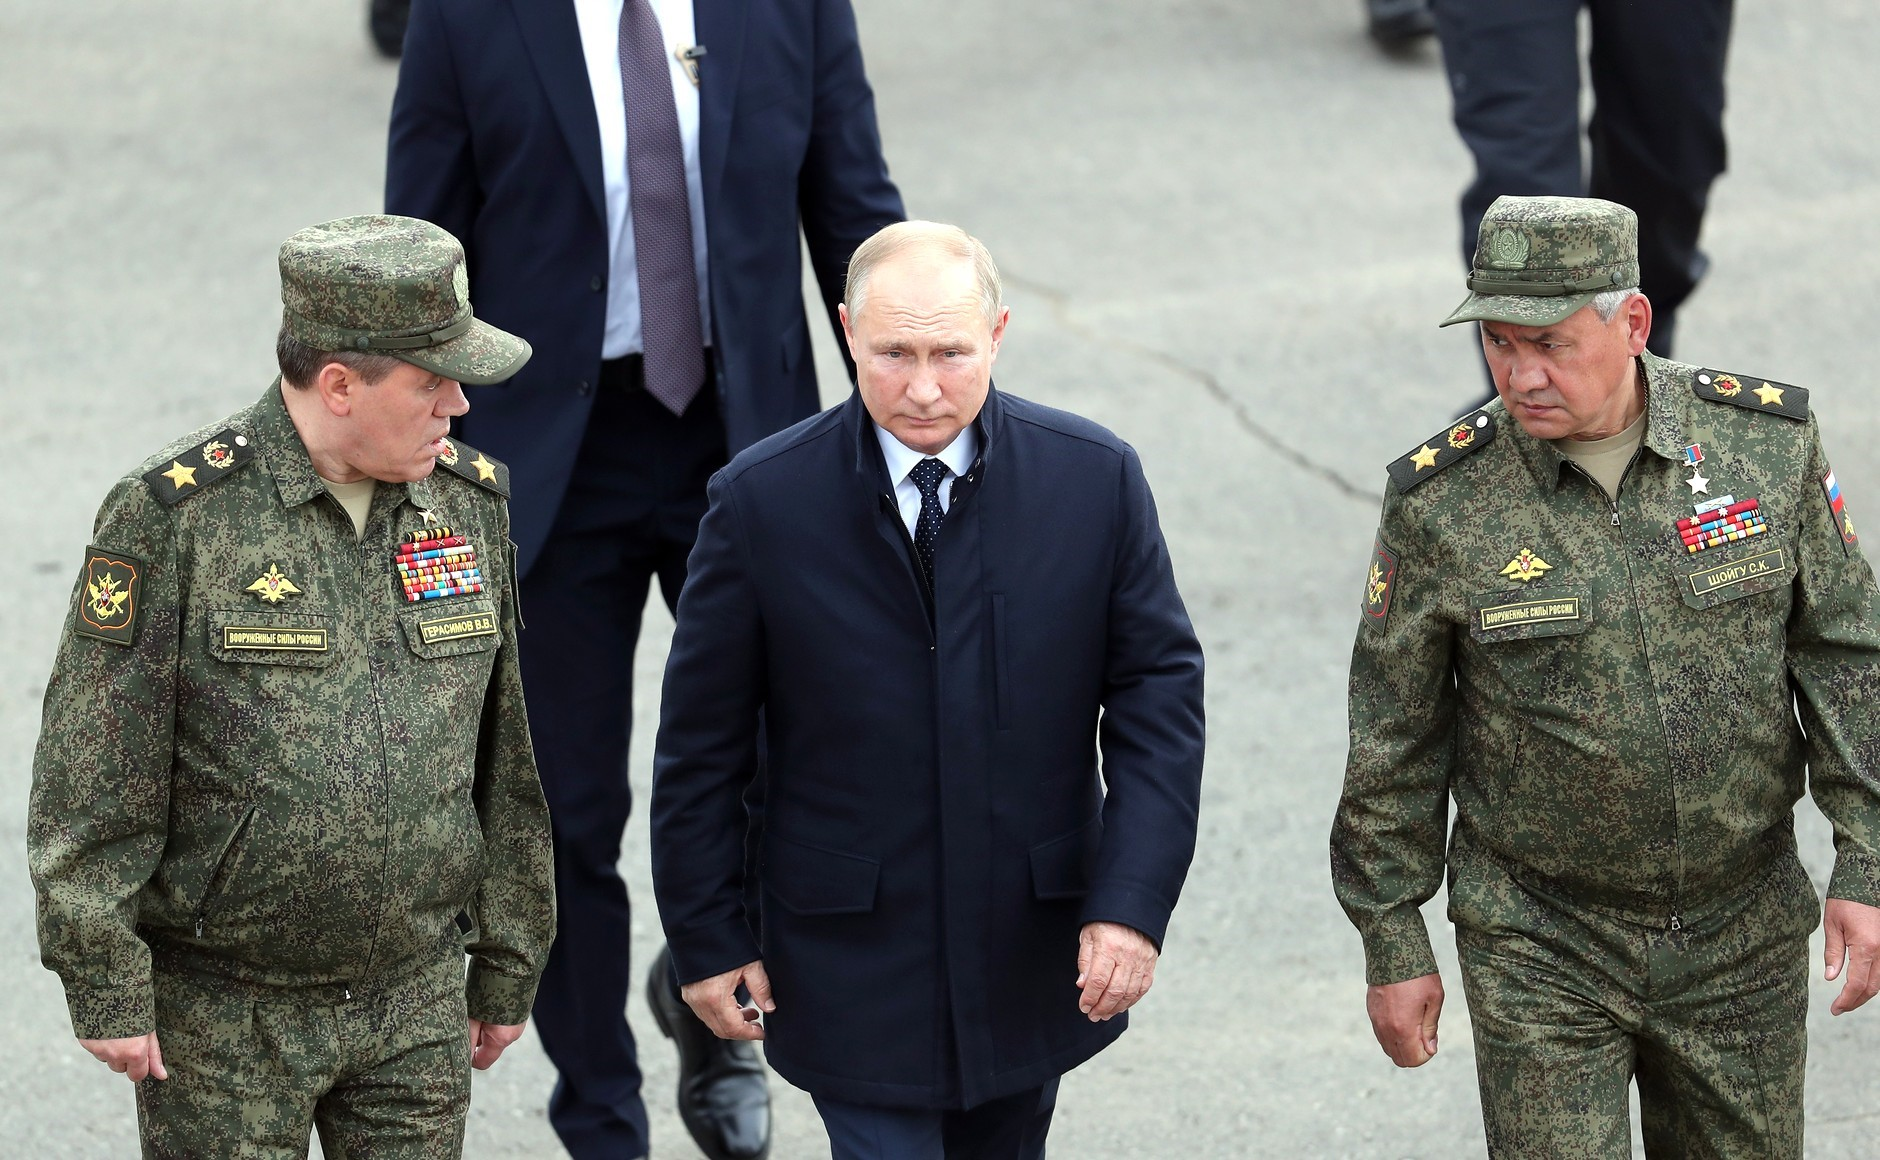 Russians Have More Trust In Army Than In Putin